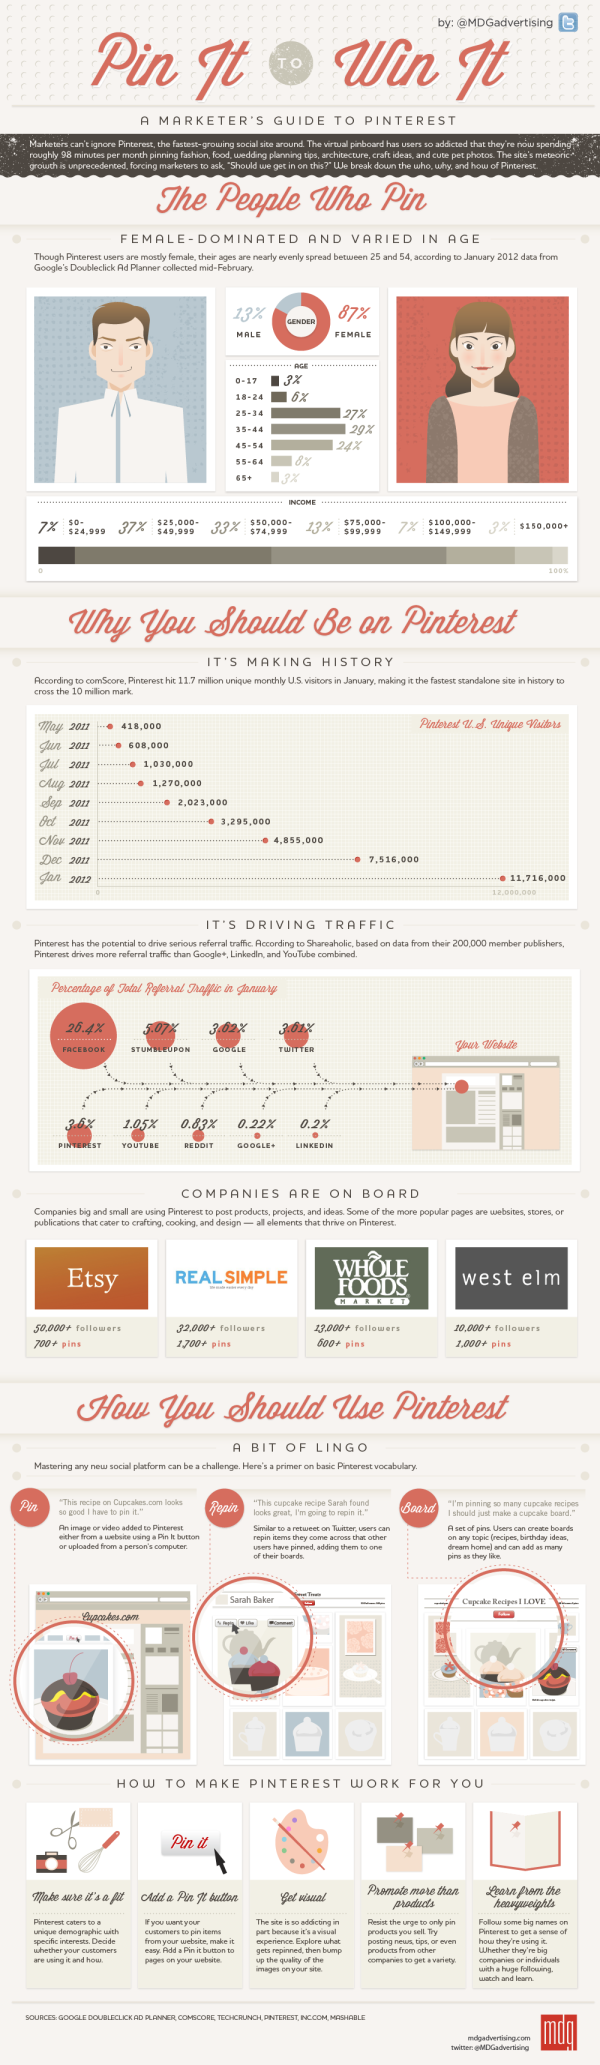 infographic marketers guide to pinterest resized 600